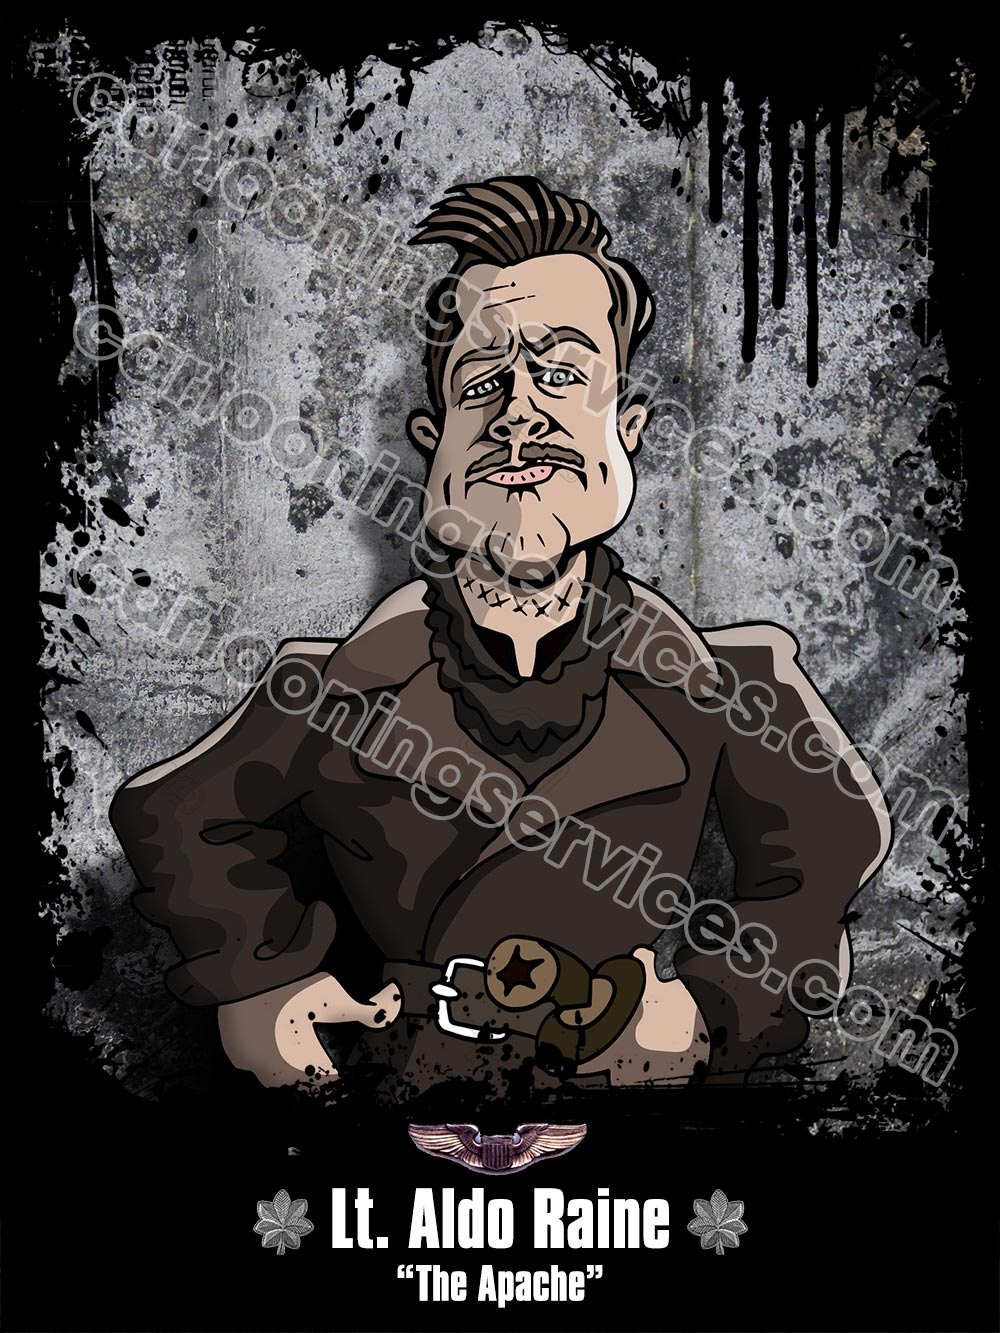 aldo-raine-inglorious-basterds